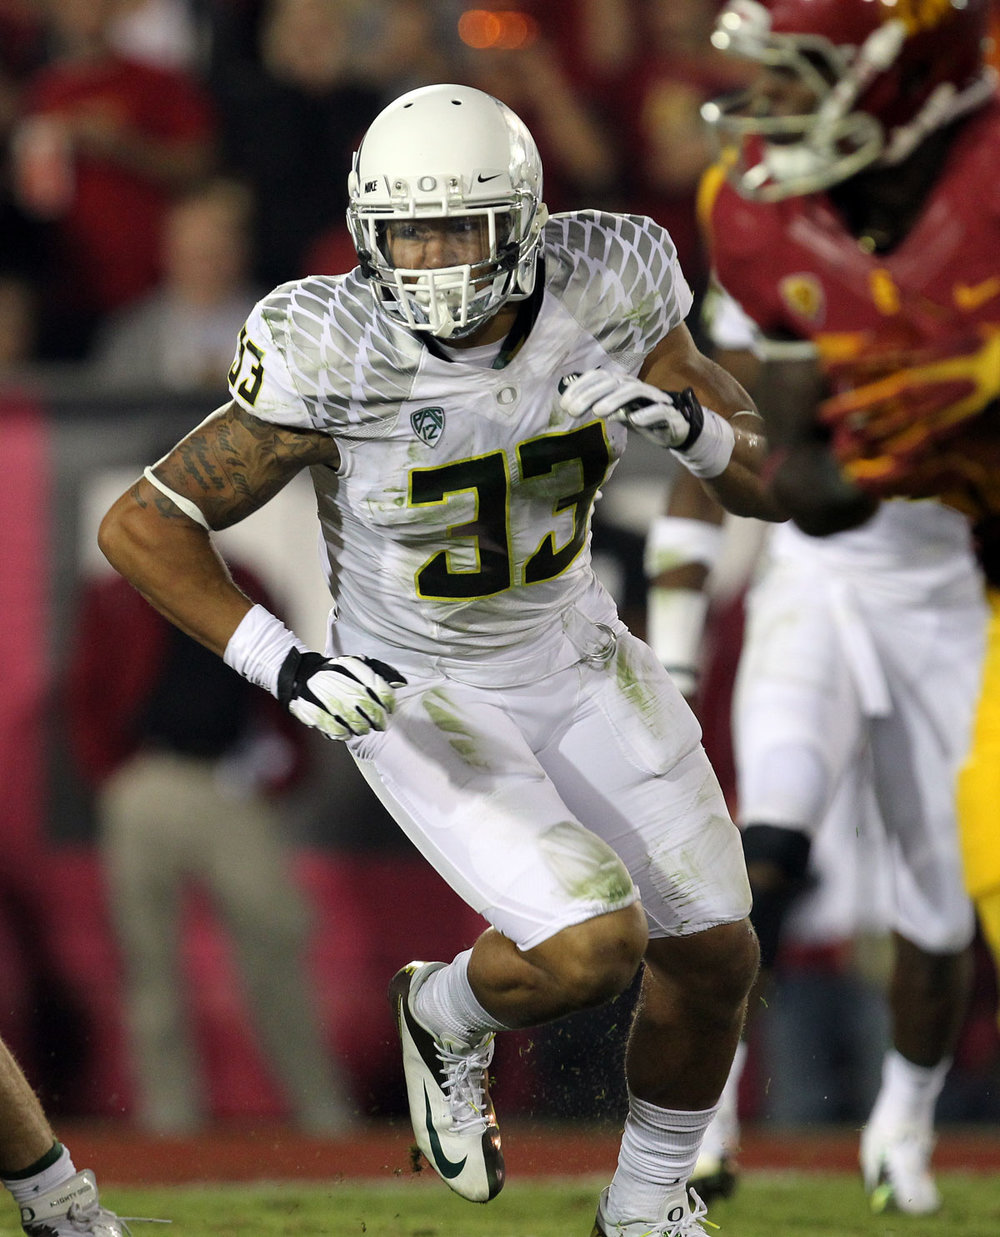 Tyson Coleman - - Position - LBCollege - OregonFootball Fact: Tyson, a former 4-star recruit out of Lake Oswego High School, had highly successful career at University of Oregon, where he logged 162 career tackles in helping the Ducks to four consecutive bowl appearances including a national championship appearance during the 2014 season. He started the final 28 straight games of his career.